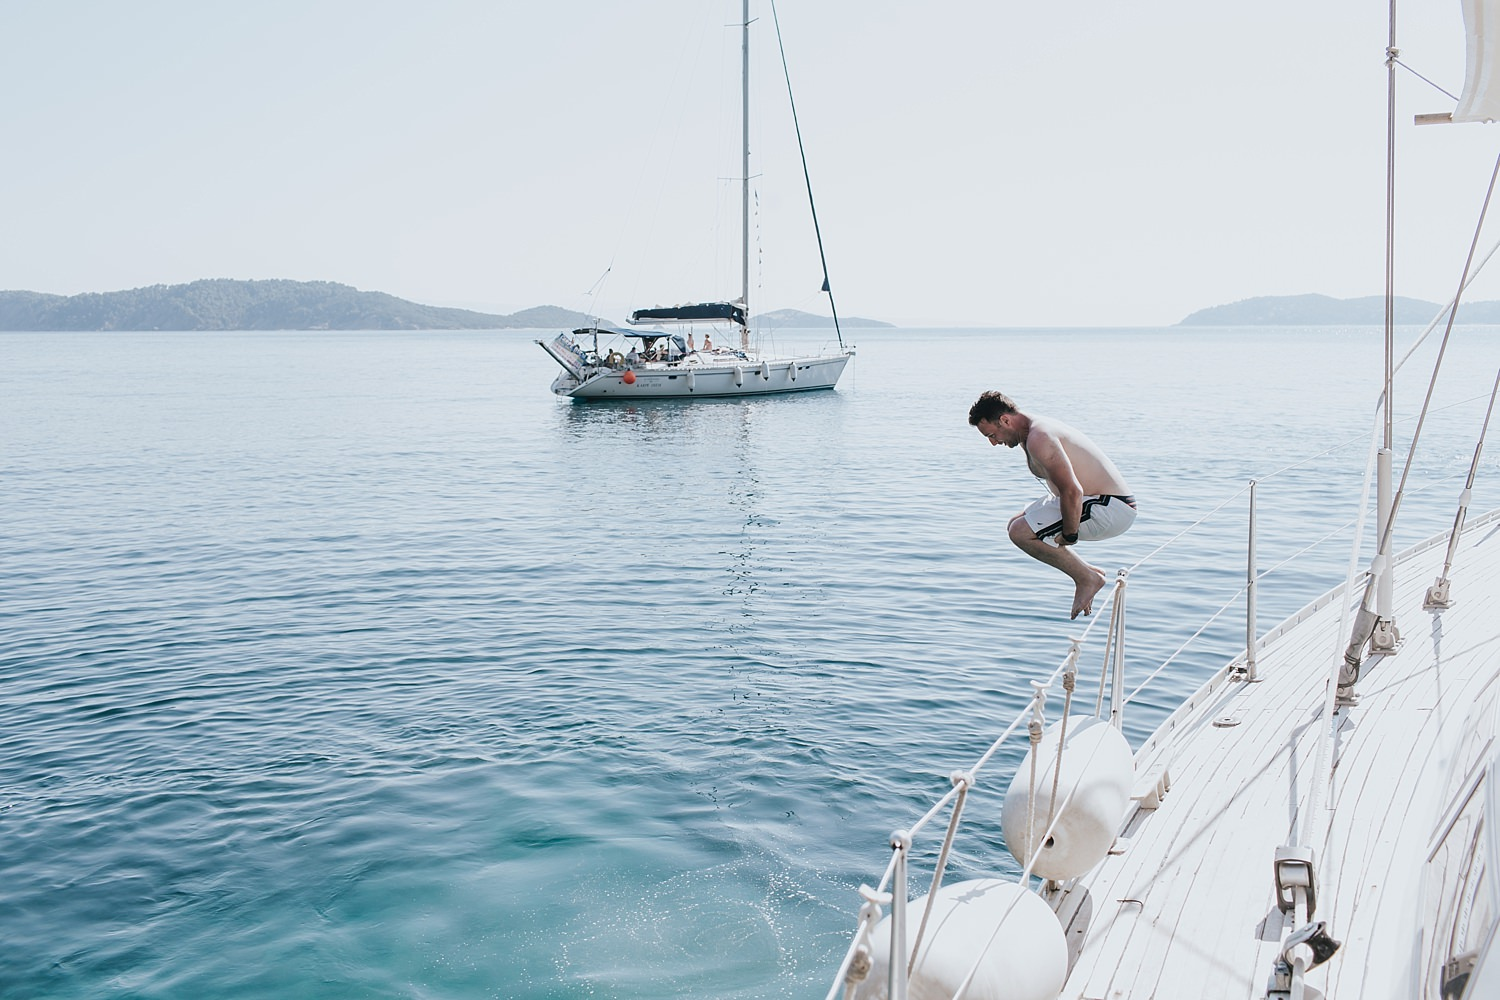 diving into water before skiathos wedding